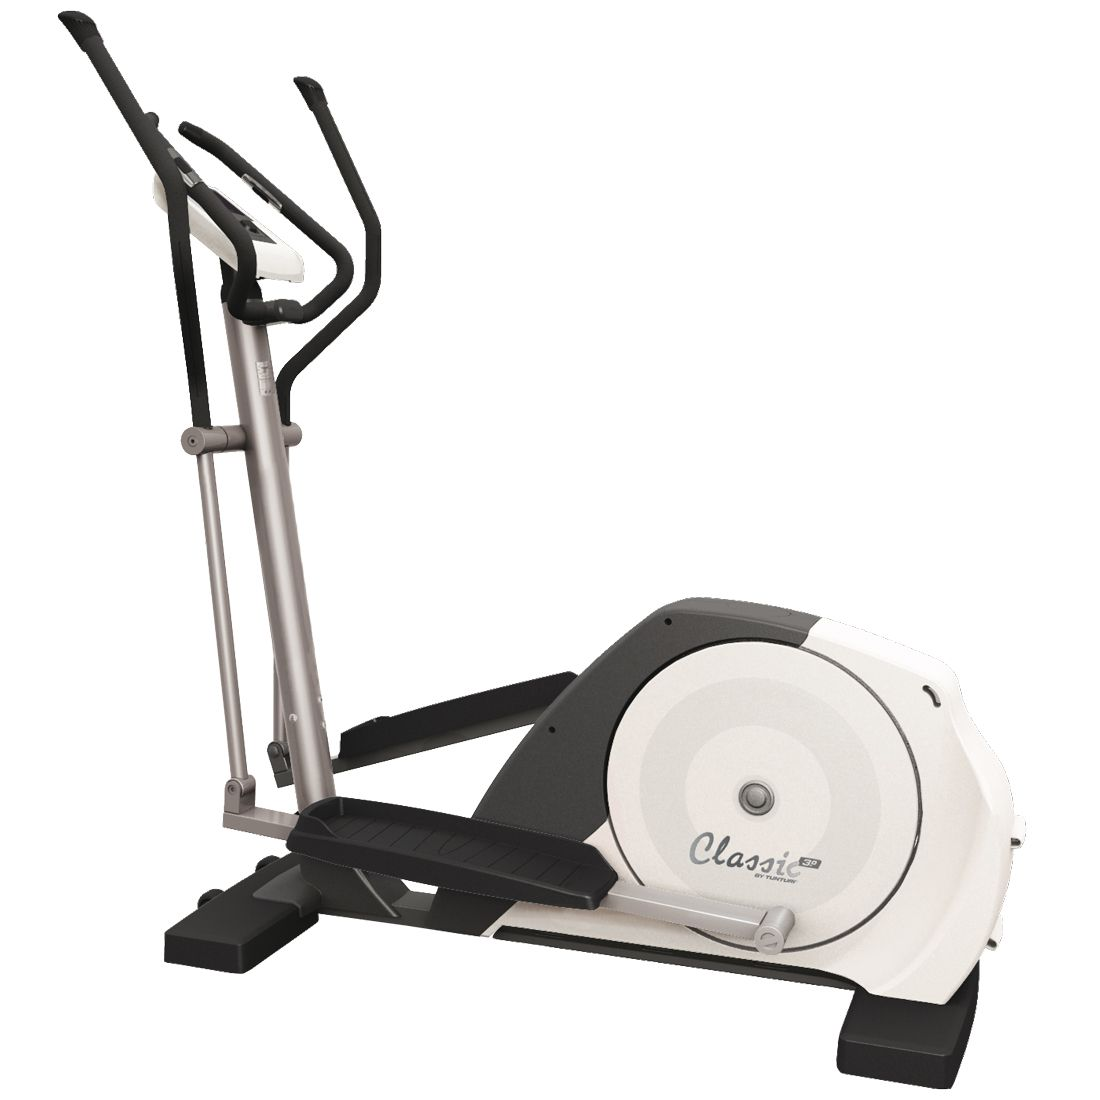 Tunturi Classic cross r 3.0 elliptical cross trainer